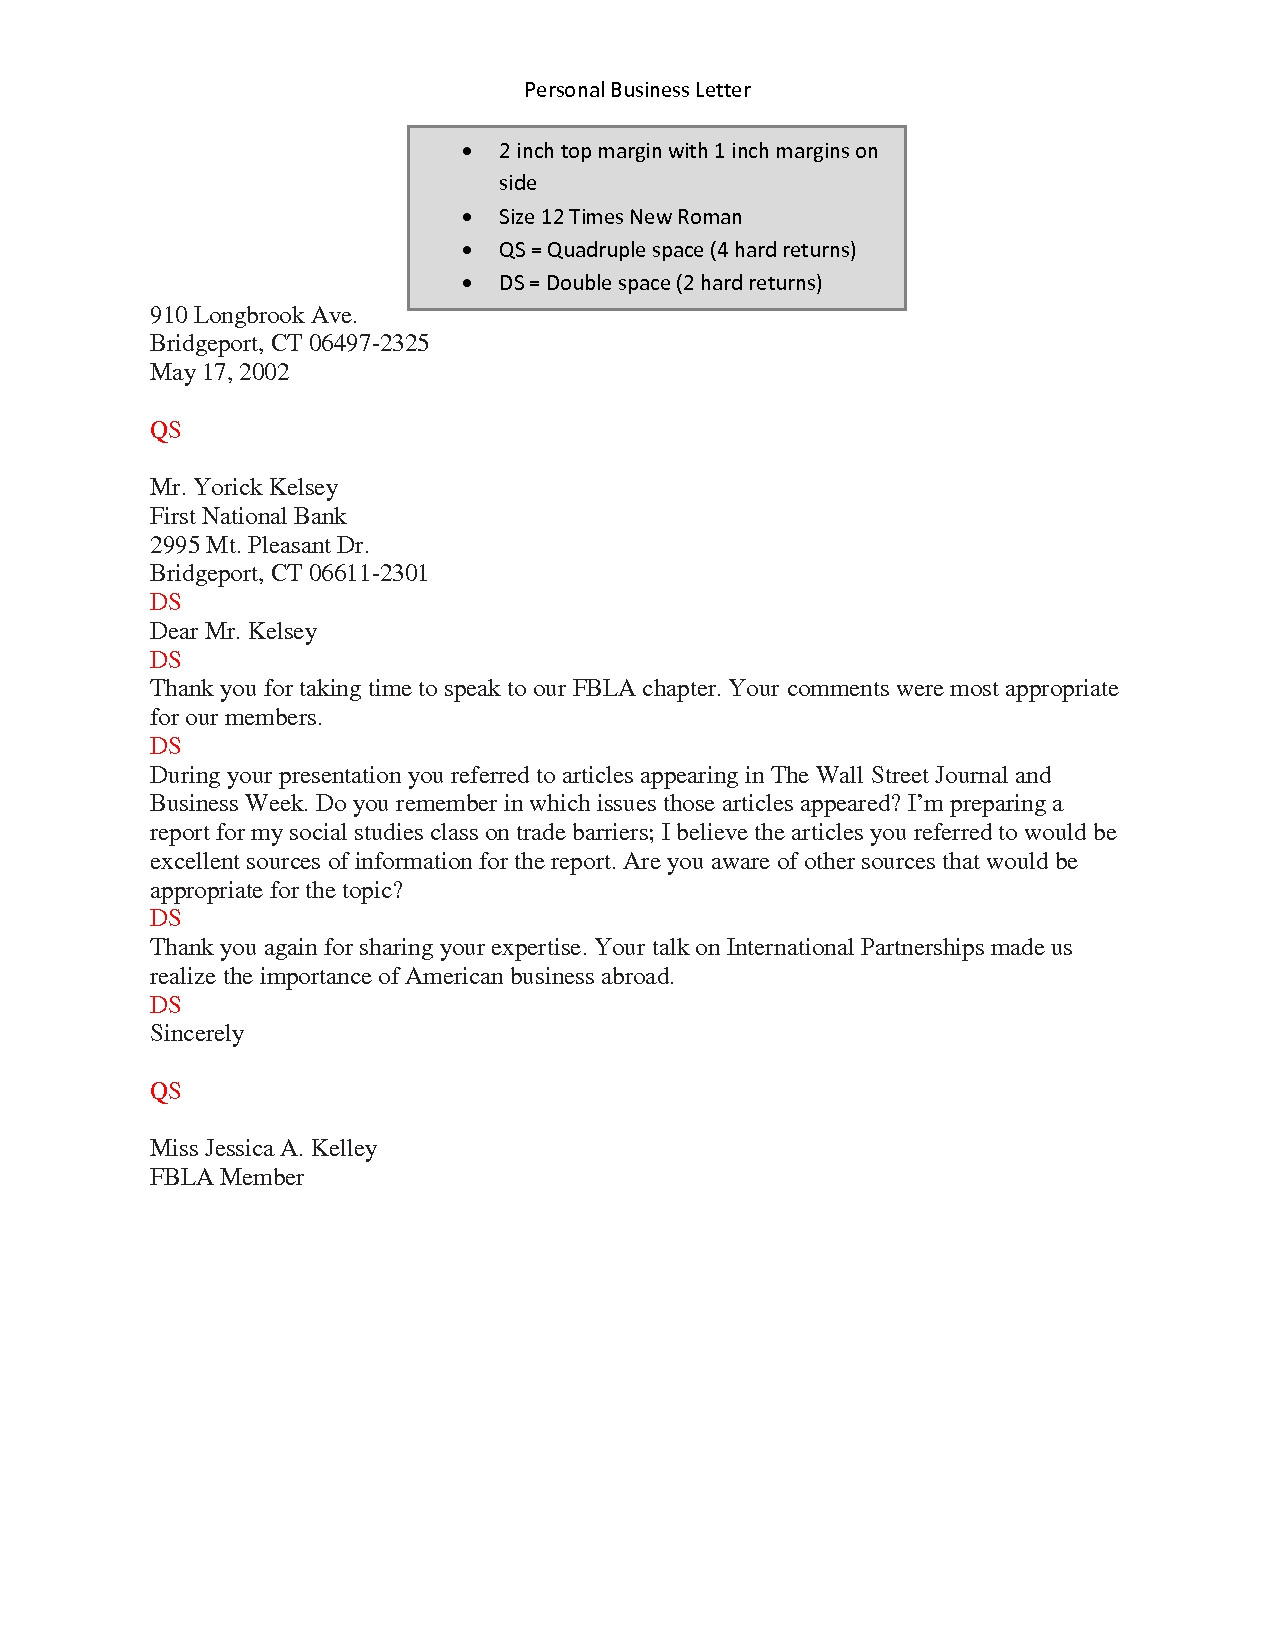 Double Space Cover Letter is A Business Letter Double Spaced the Letter Sample